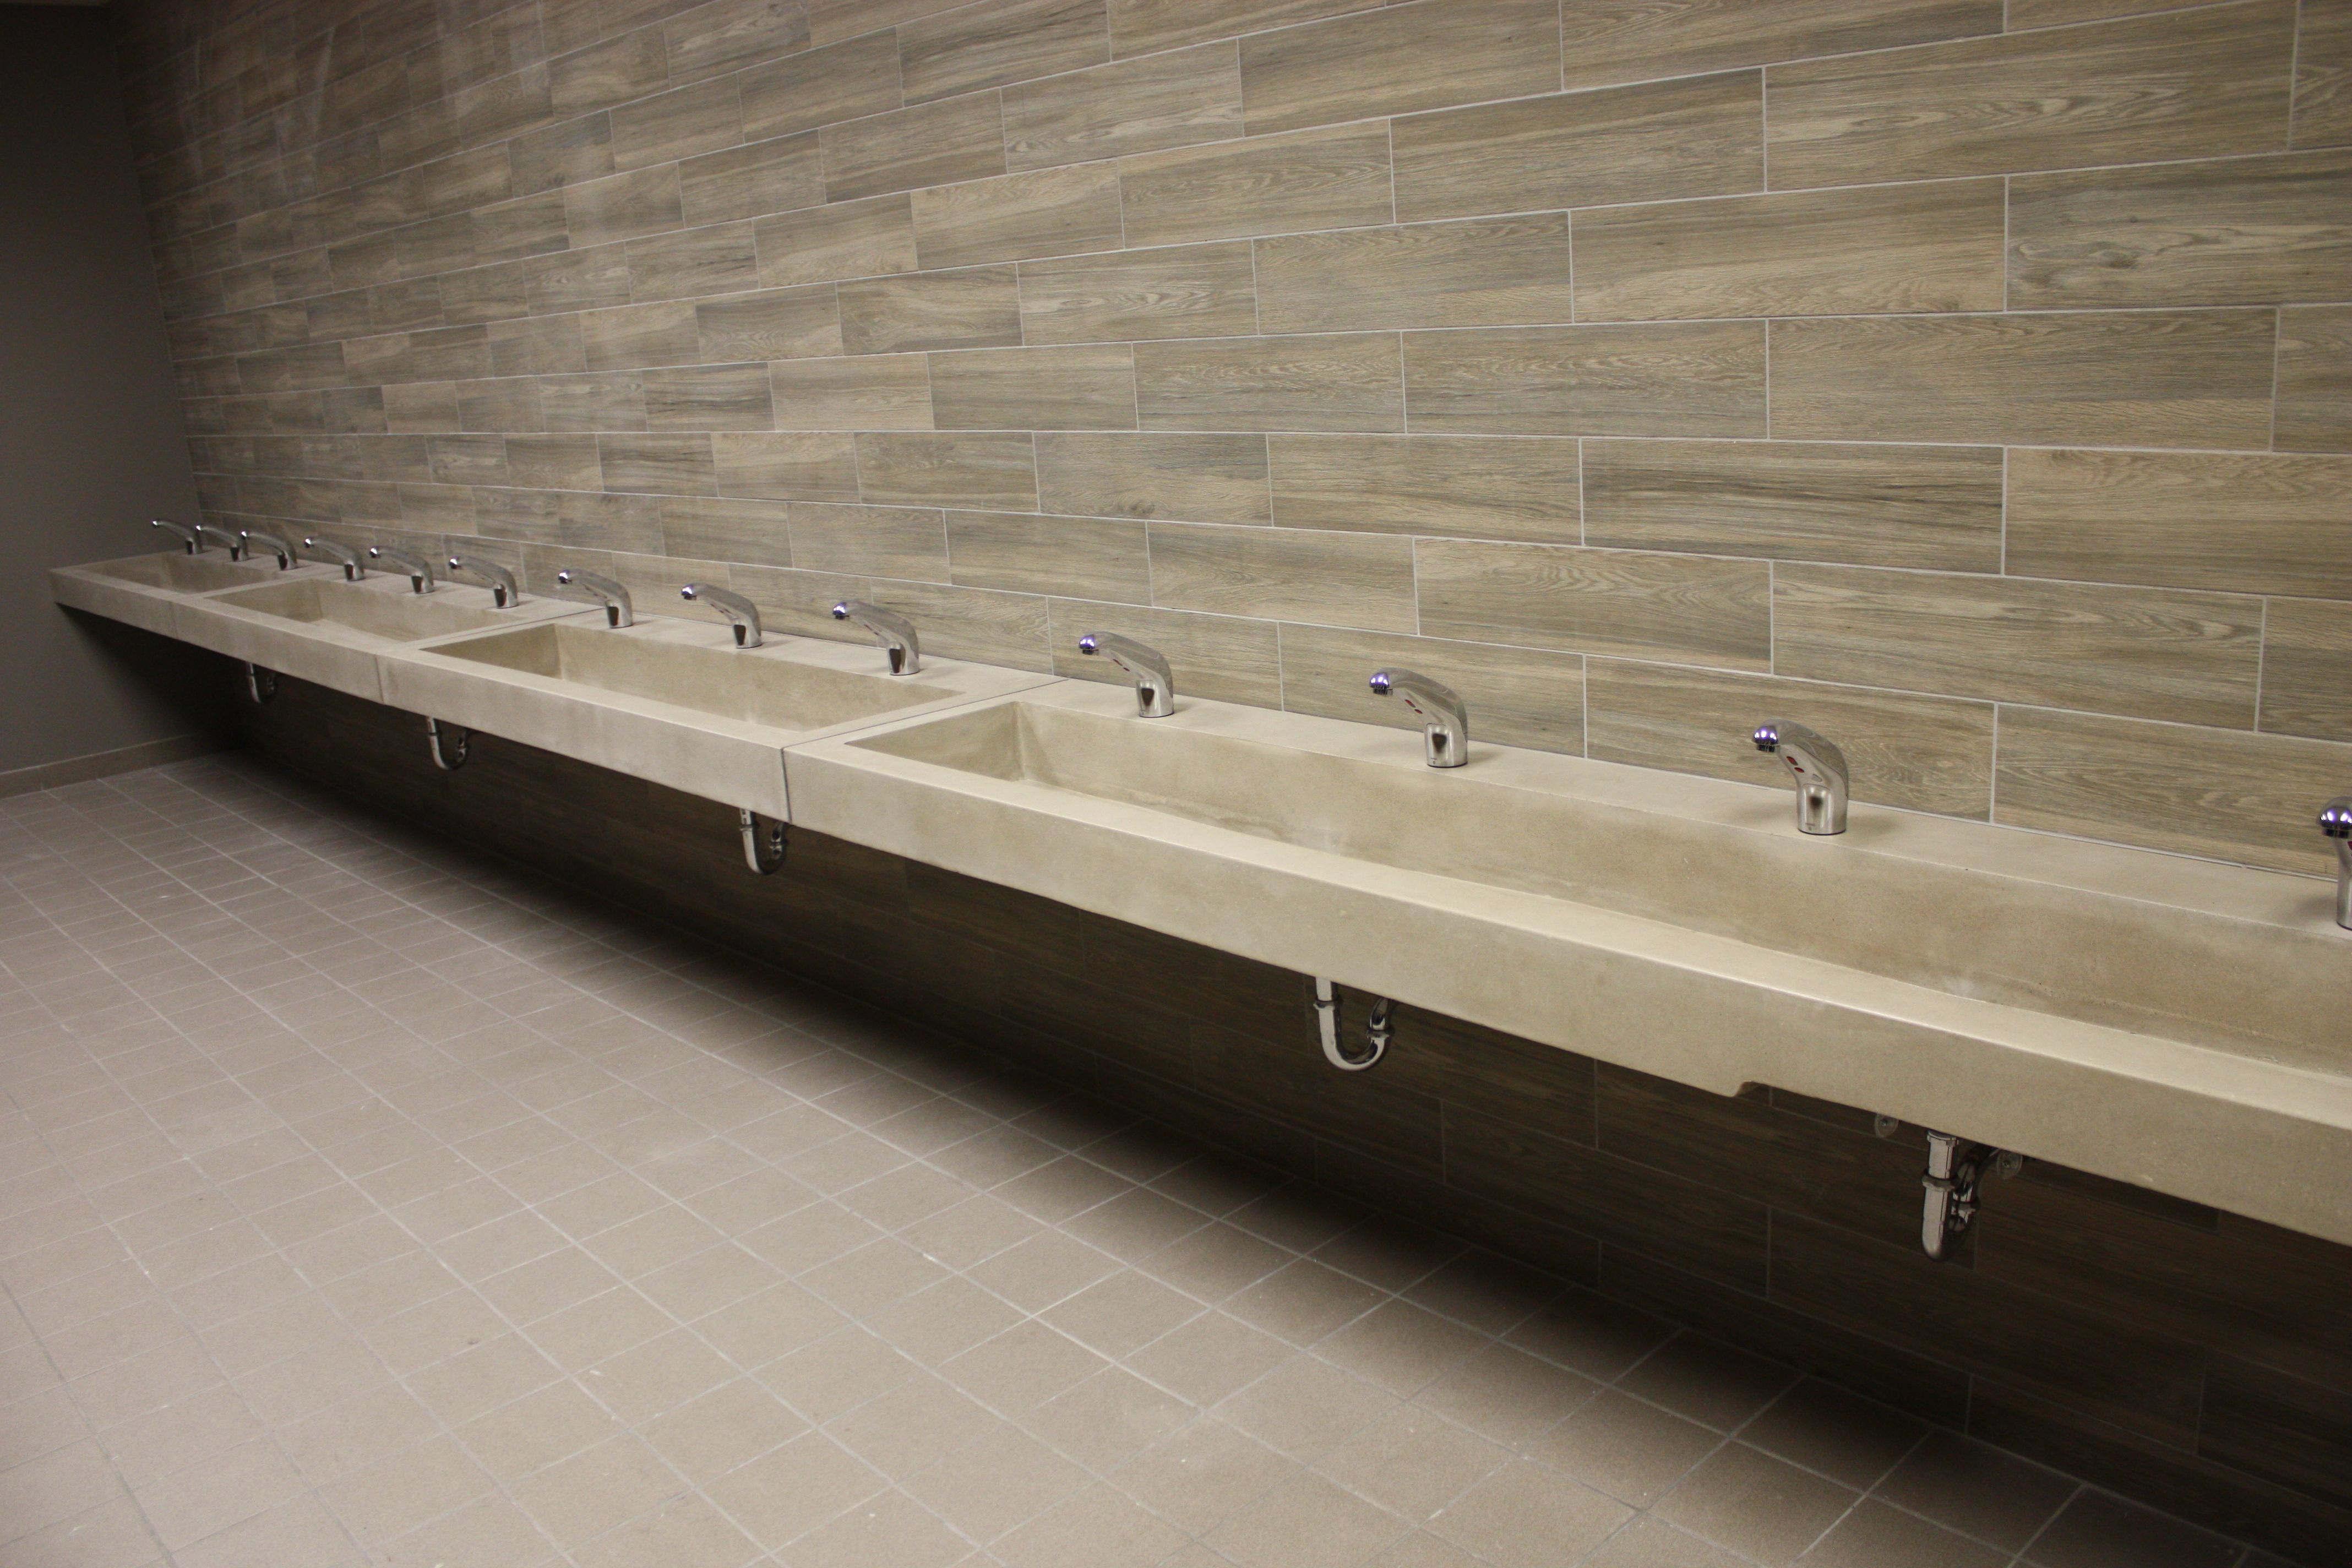 commercial washroom fixtures - Google Search | Stuypark House Tile ...